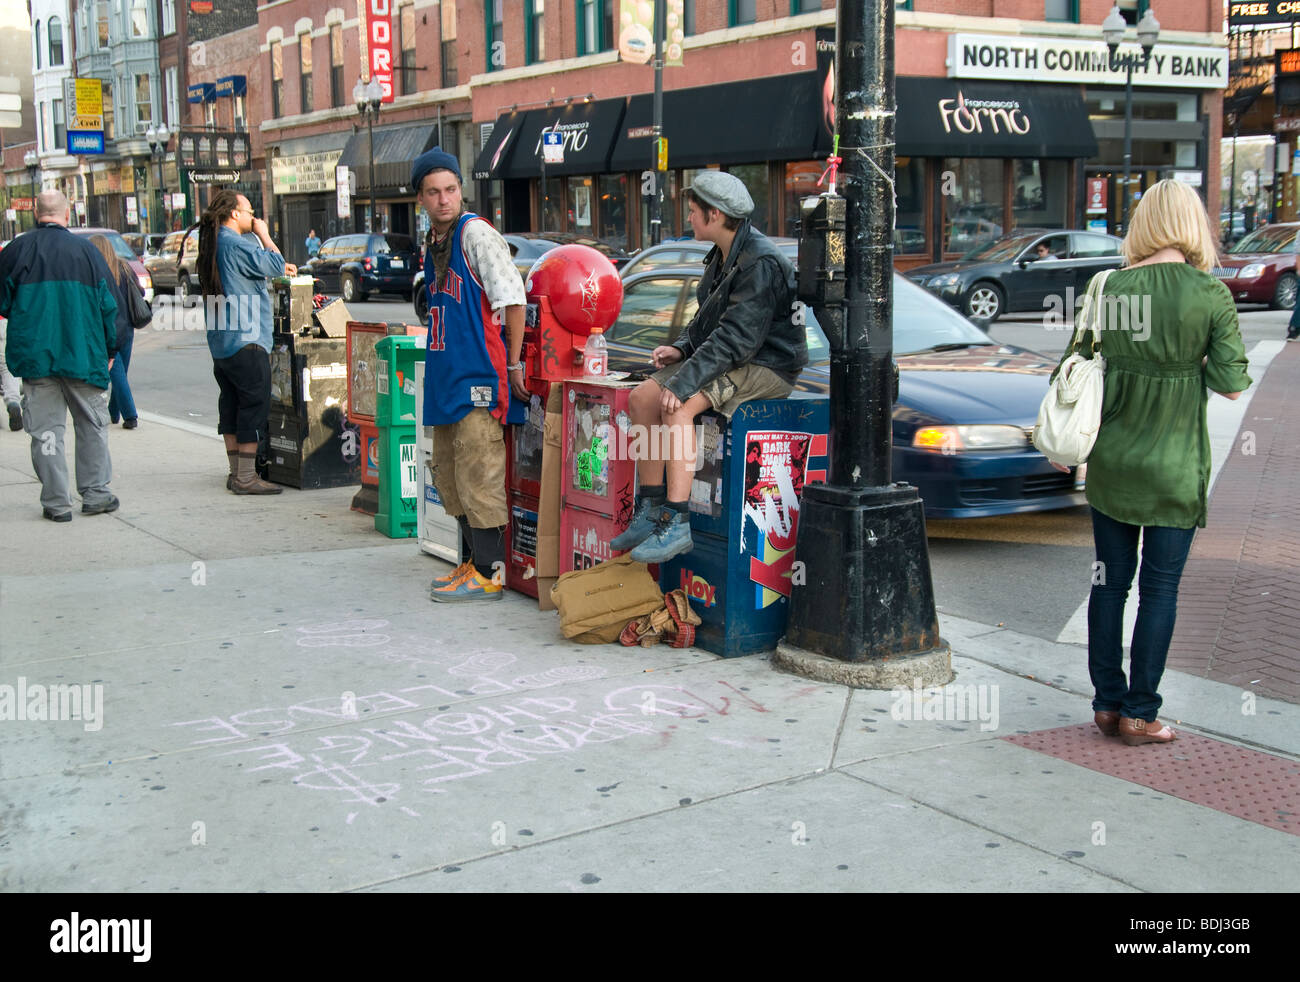 begging young people at Milwaukkee Av, Chicago, IL, US - Stock Image